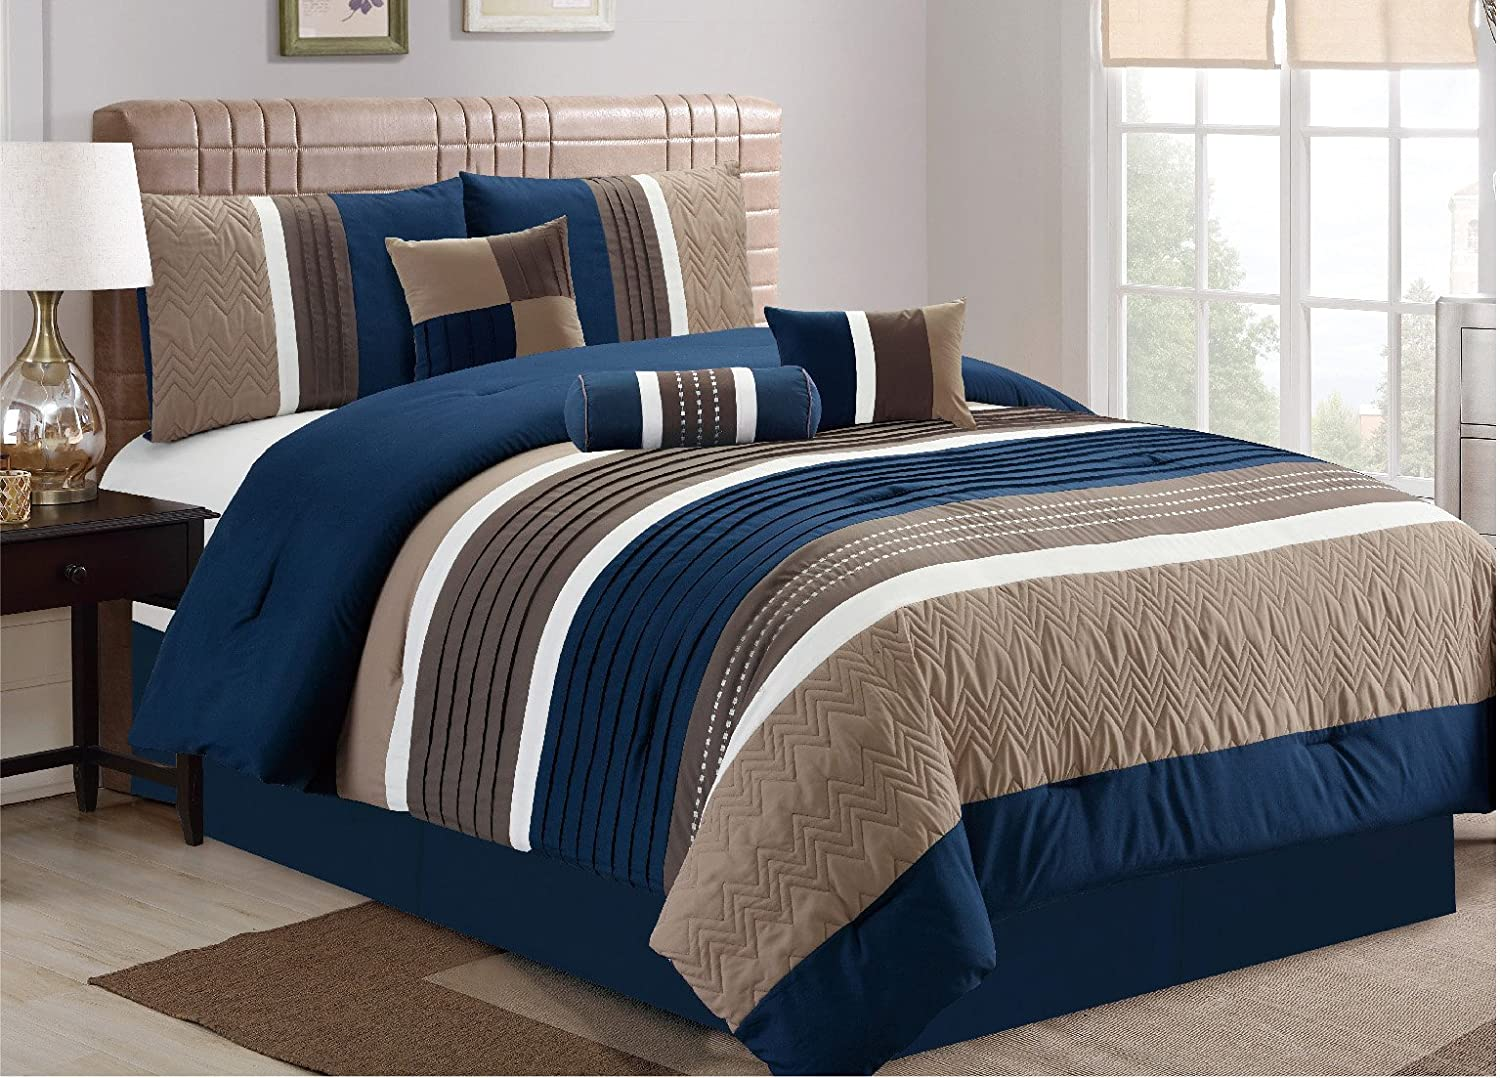 amazon com esca 7 piece closeout luxury bed in bag comforter set